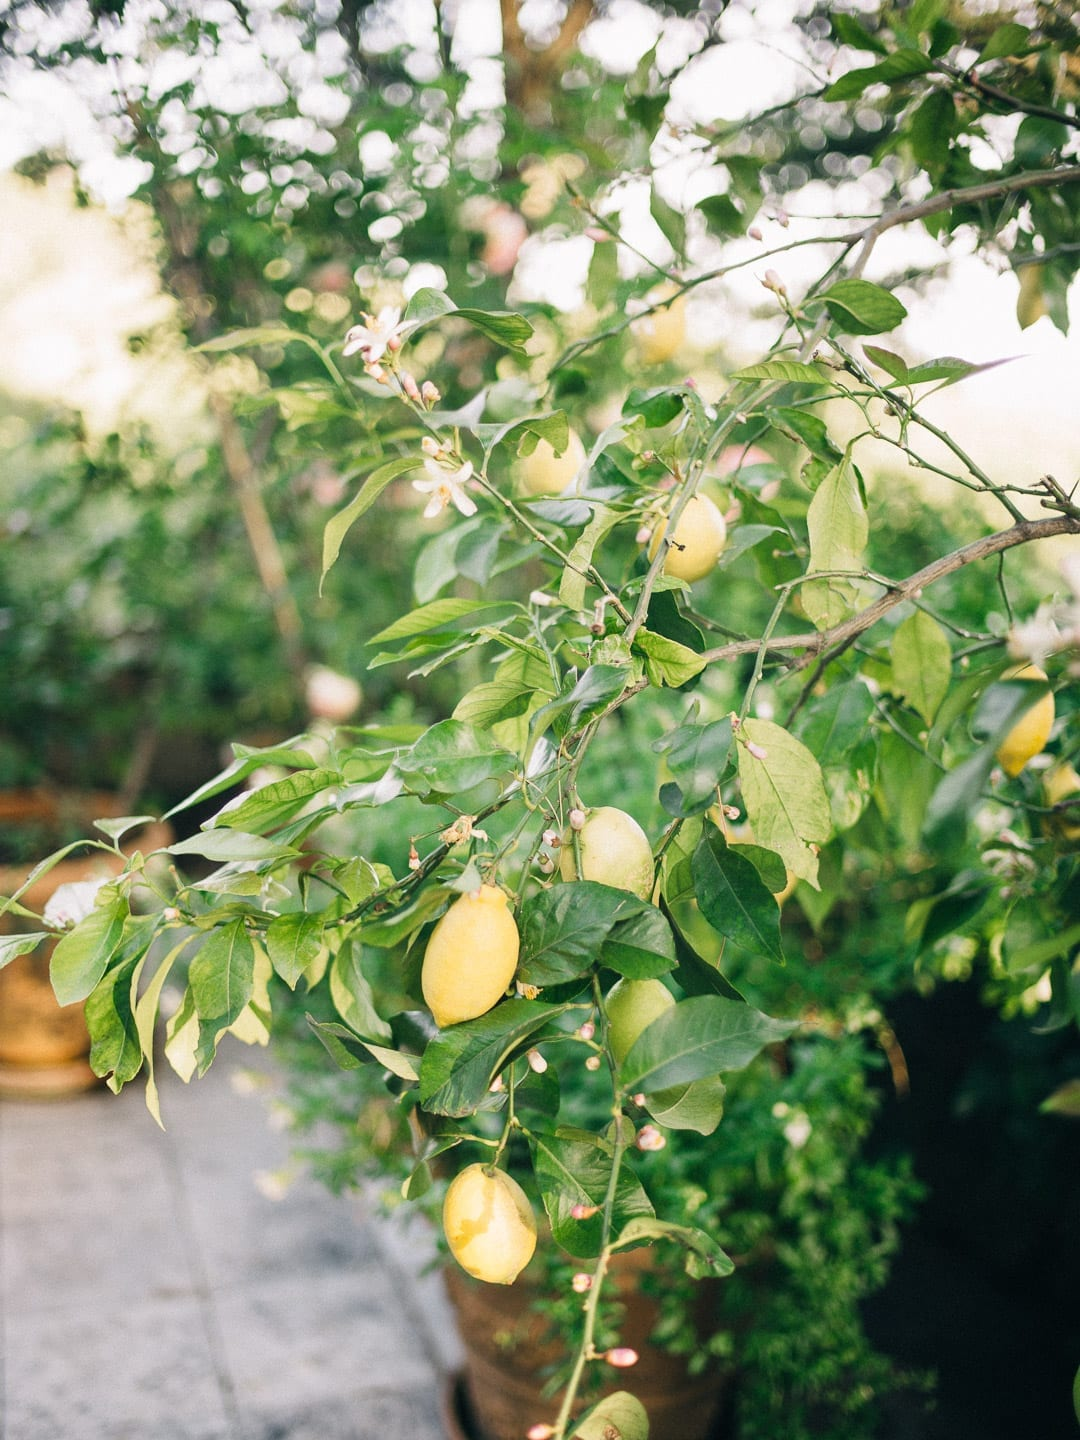 Lemon tree growing in a French garden - First Glimpse of France